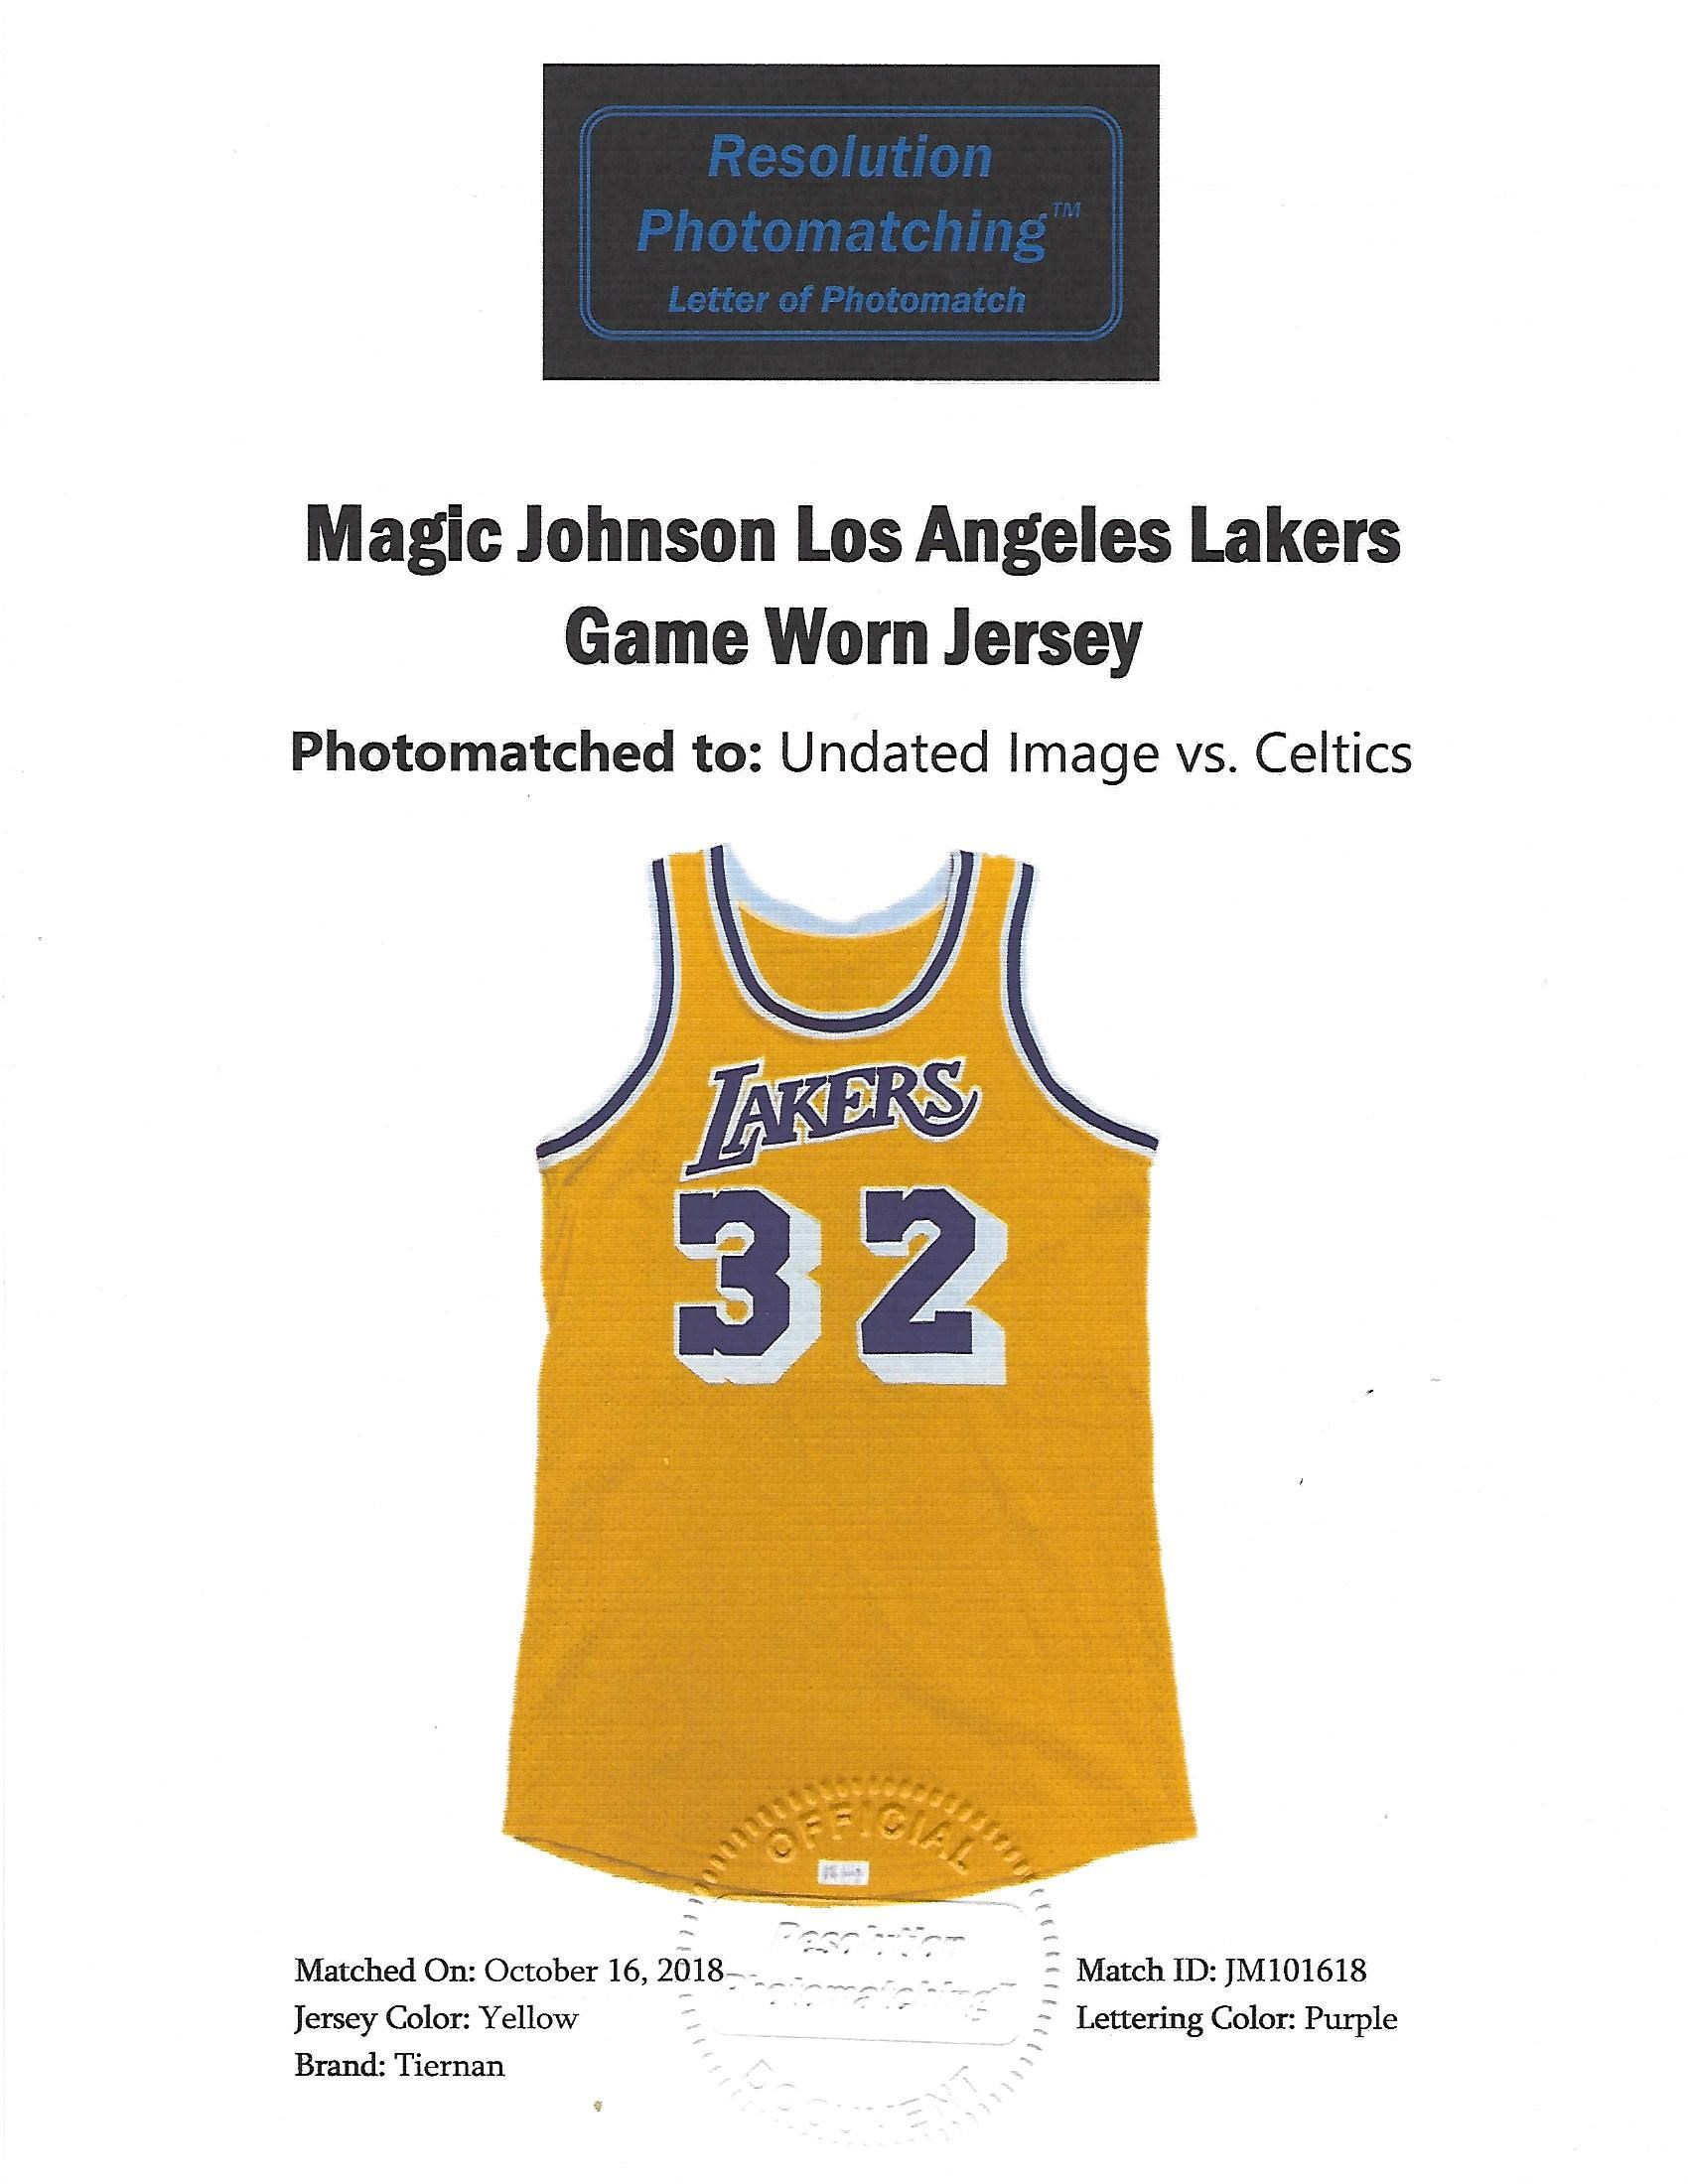 65e88c6ced4 ... MAGIC JOHNSON LOS ANGELES LAKERS (CHAMPIONSHIP SEASON) GAME WORN HOME  JERSEY. Touch to zoom. Previous